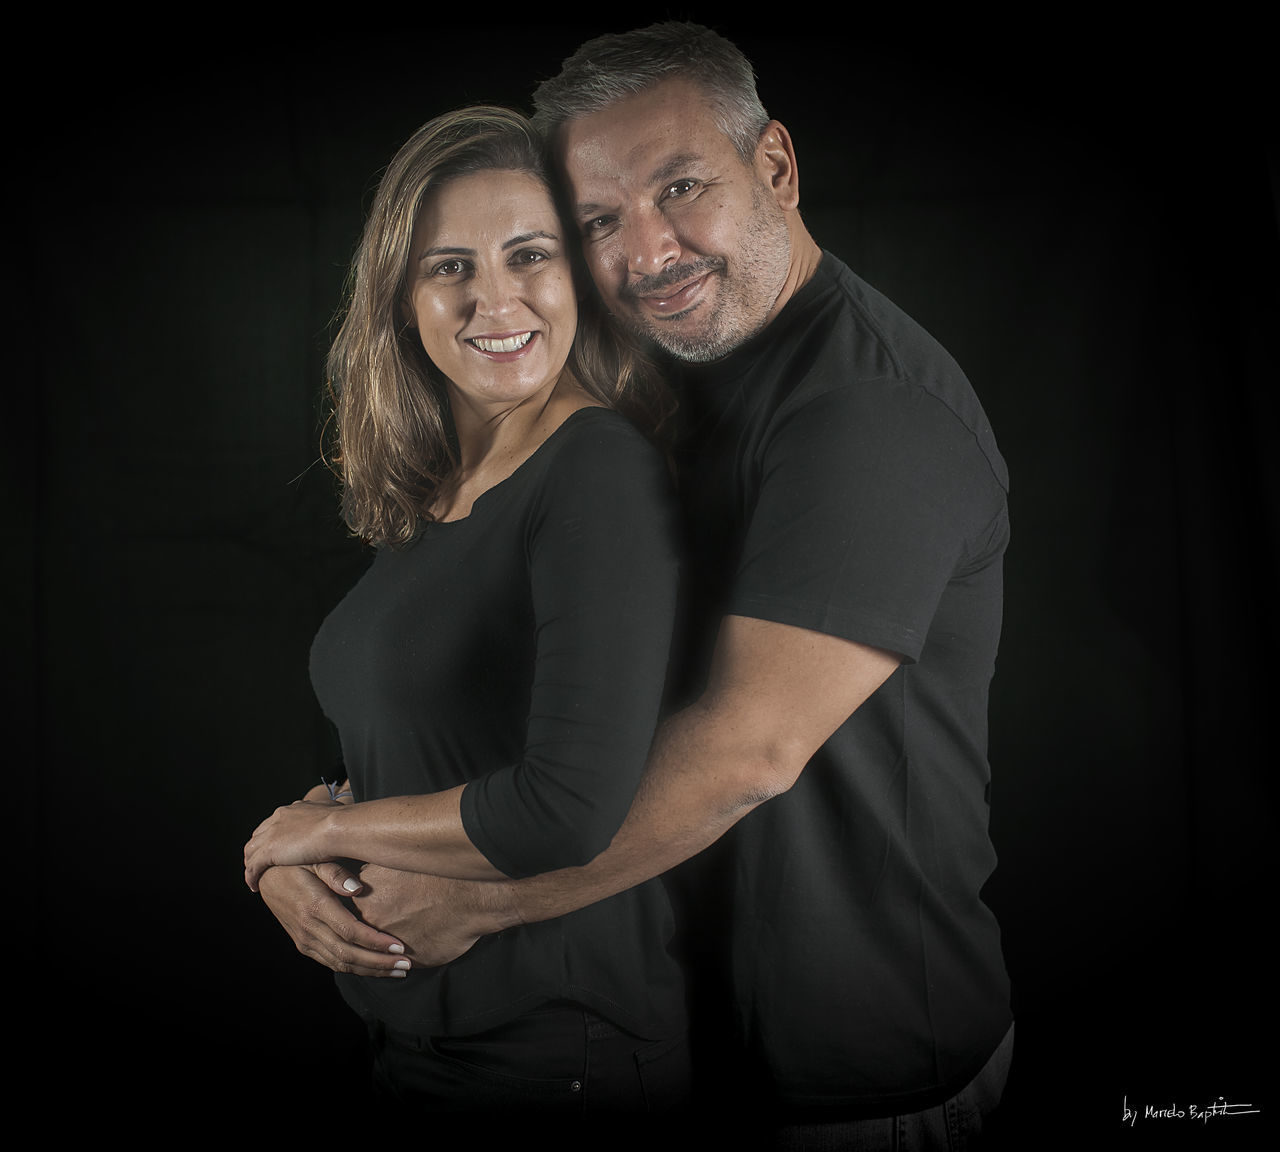 two people, black background, smiling, love, looking at camera, portrait, real people, pregnant, togetherness, lifestyles, embracing, happiness, studio shot, standing, young women, young adult, bonding, leisure activity, night, indoors, abdomen